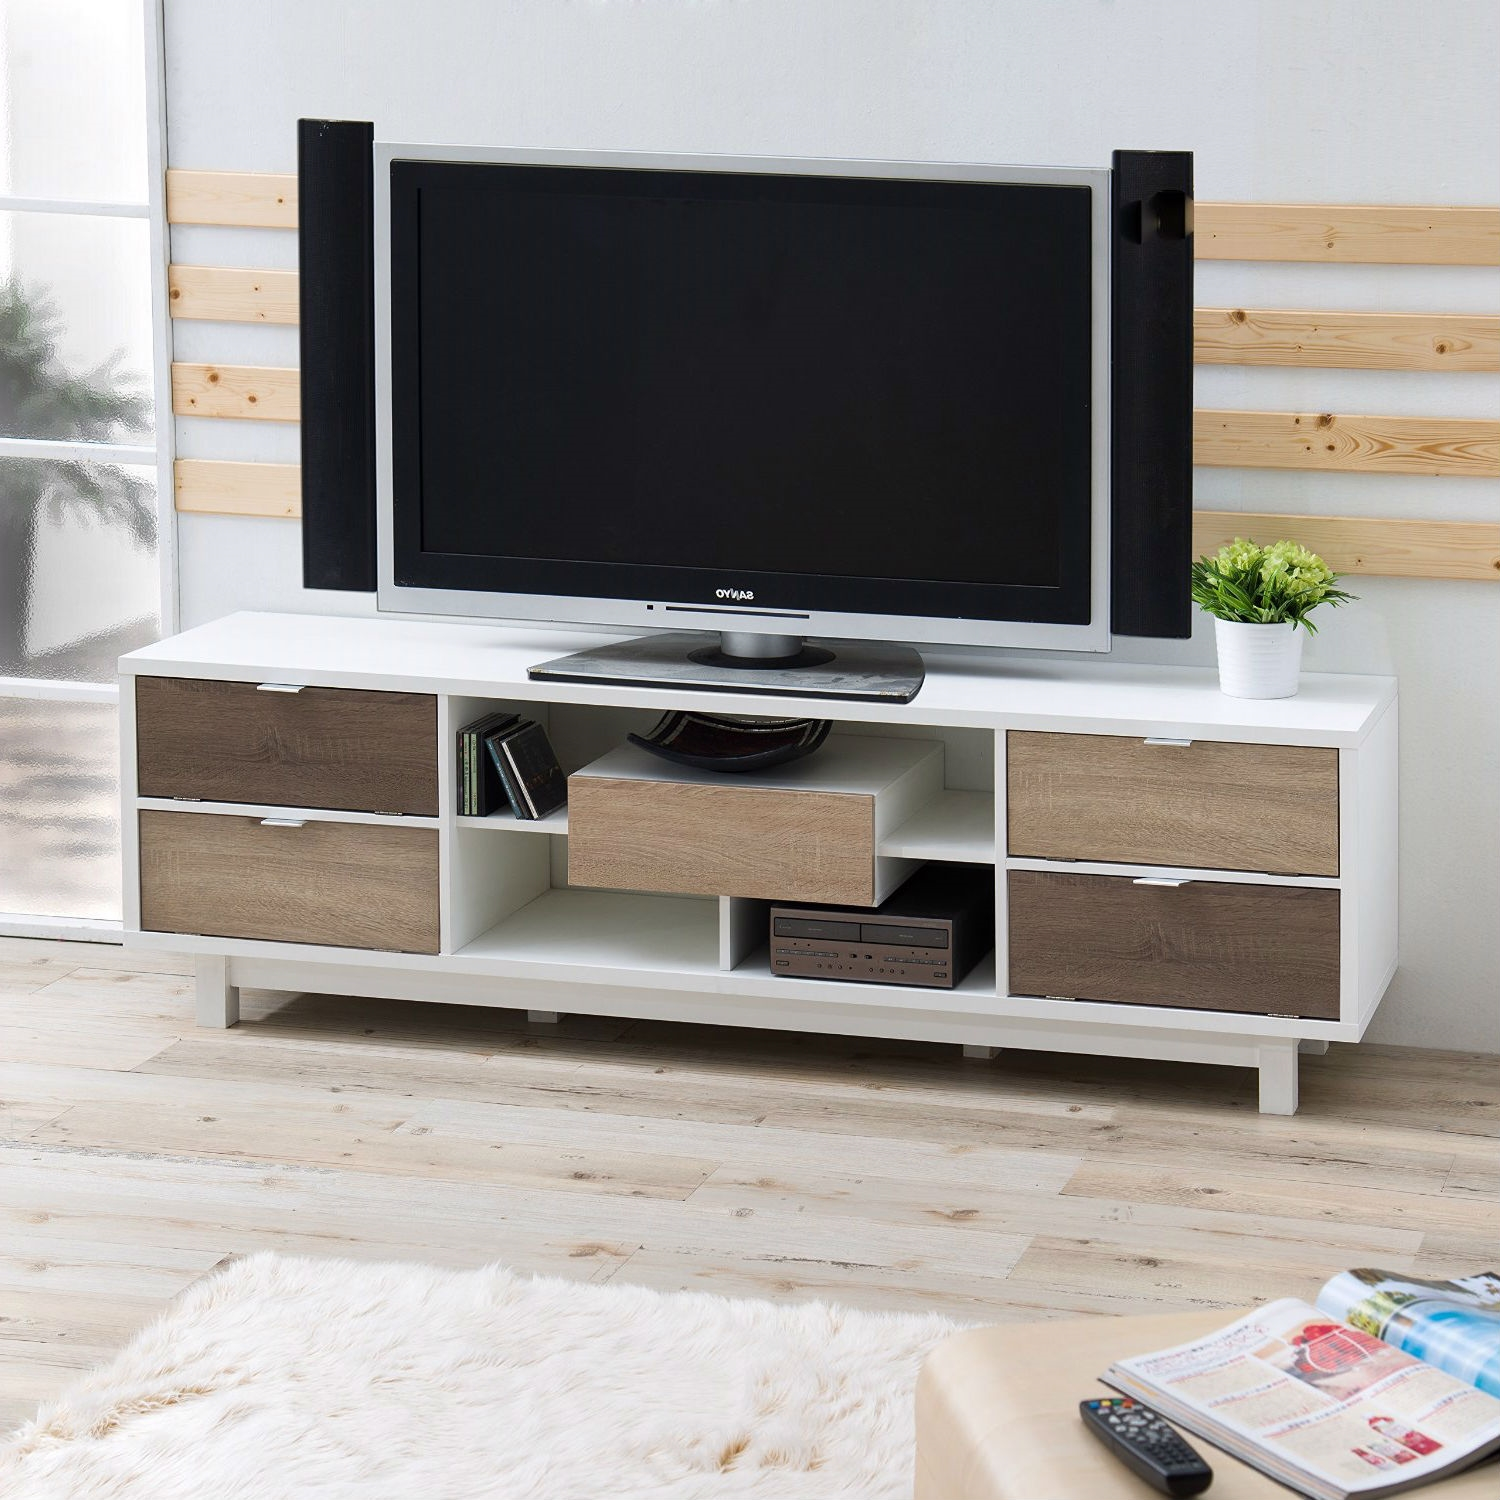 modern inch white tv stand entertainment center with natural wood accents. modern inch white tv stand entertainment center with natural